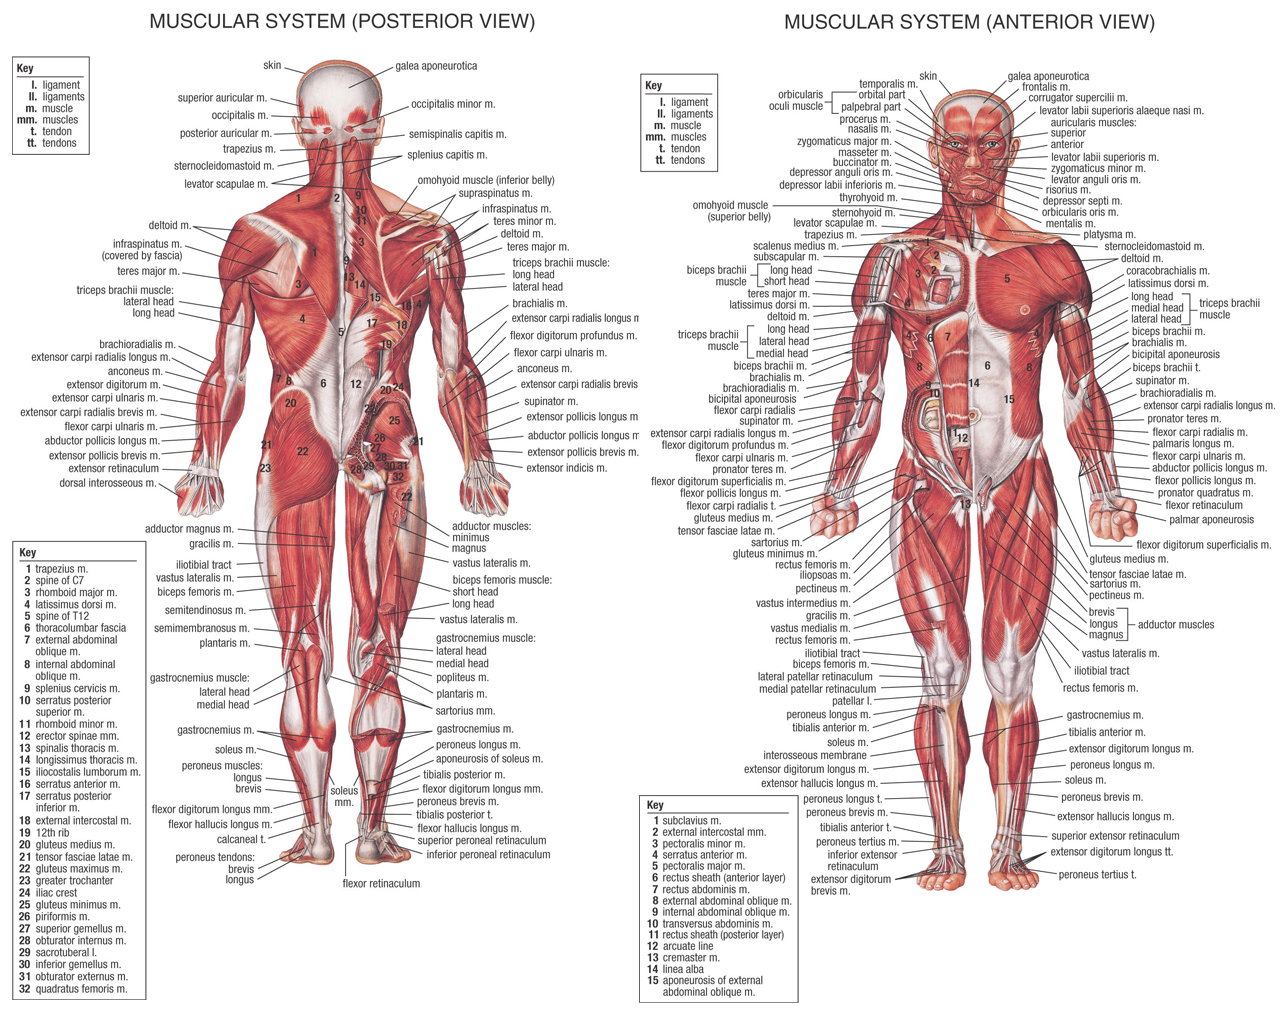 Human Muscle Anatomy How Many Muscles Do You Know Of Fi3rcefitness